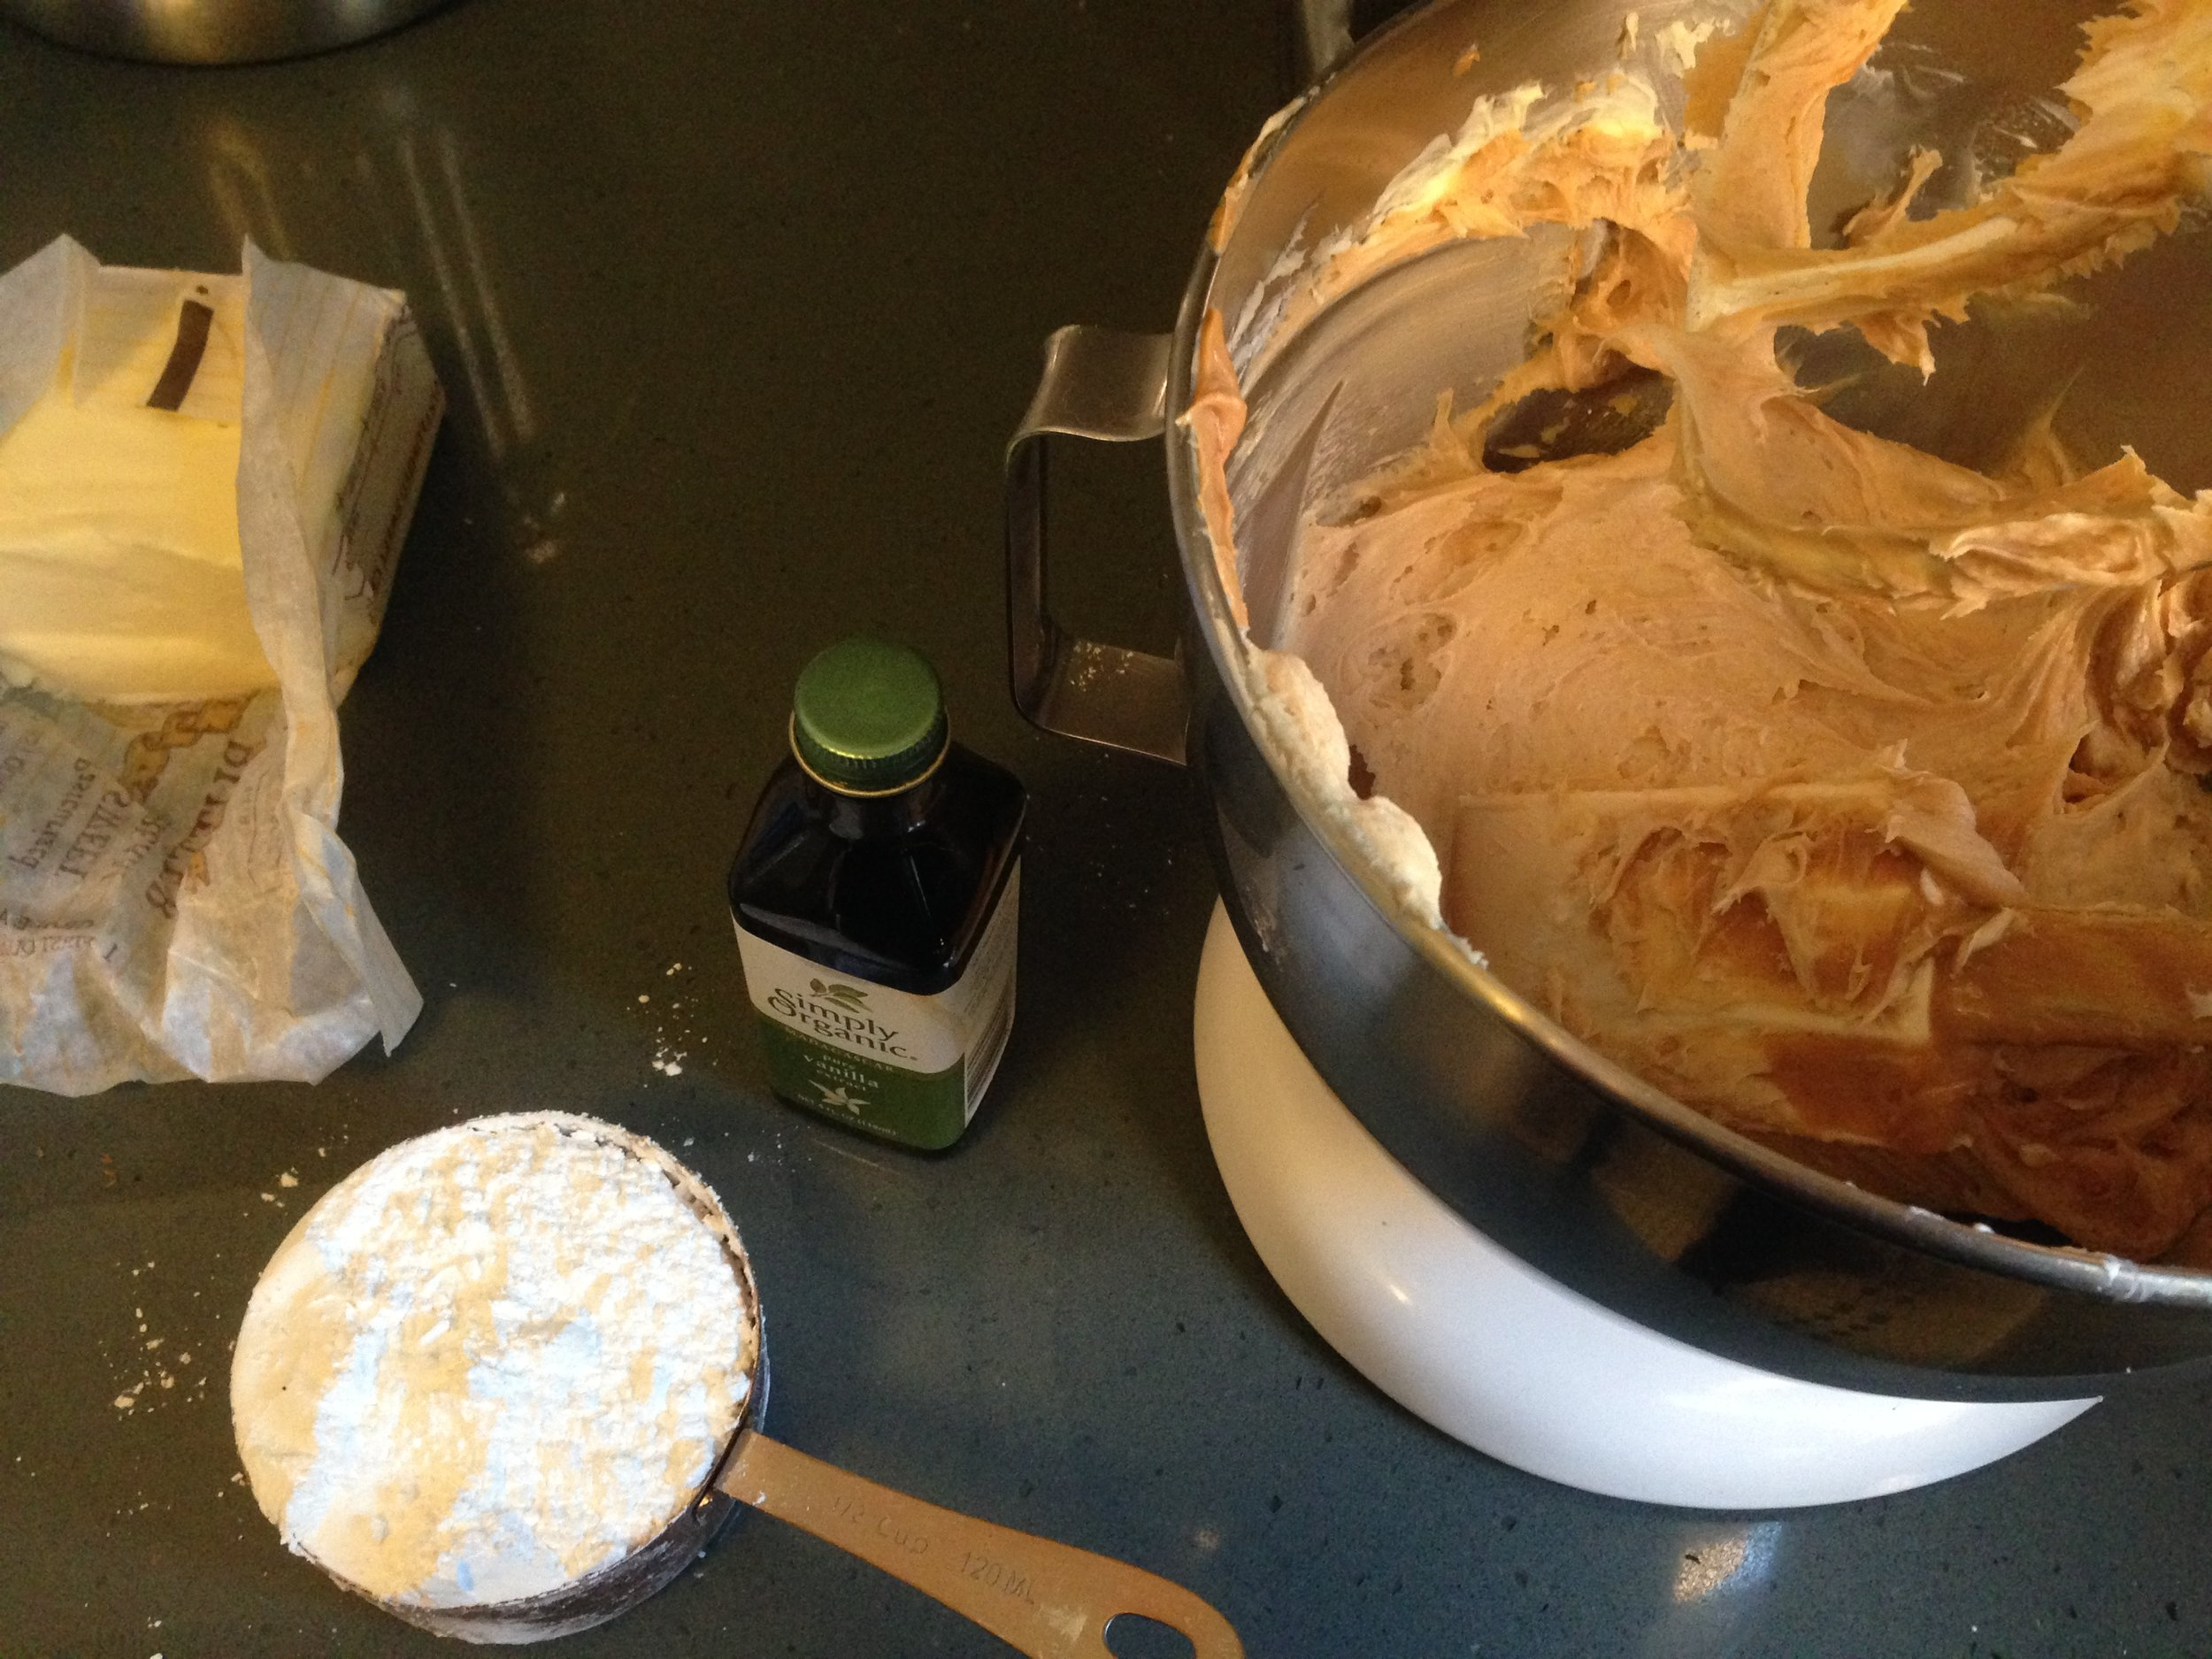 The makings of really good peanut butter cream cheese icing.